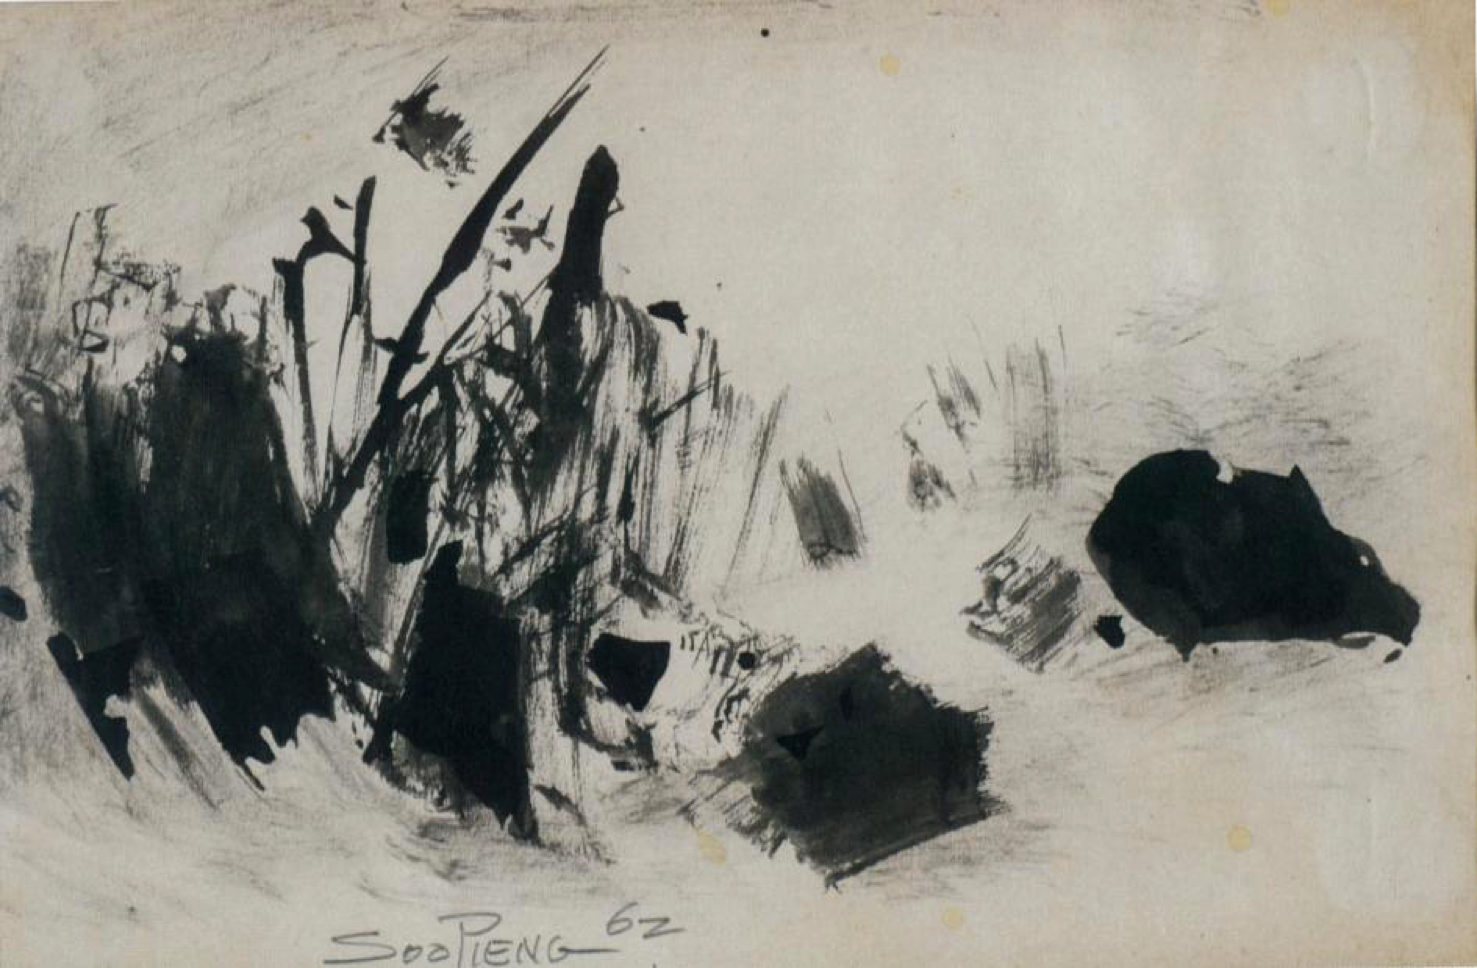 Cheong Soo Pieng, Abstract Composition II, ink on paper, 15 x 22.5 cm, 1962